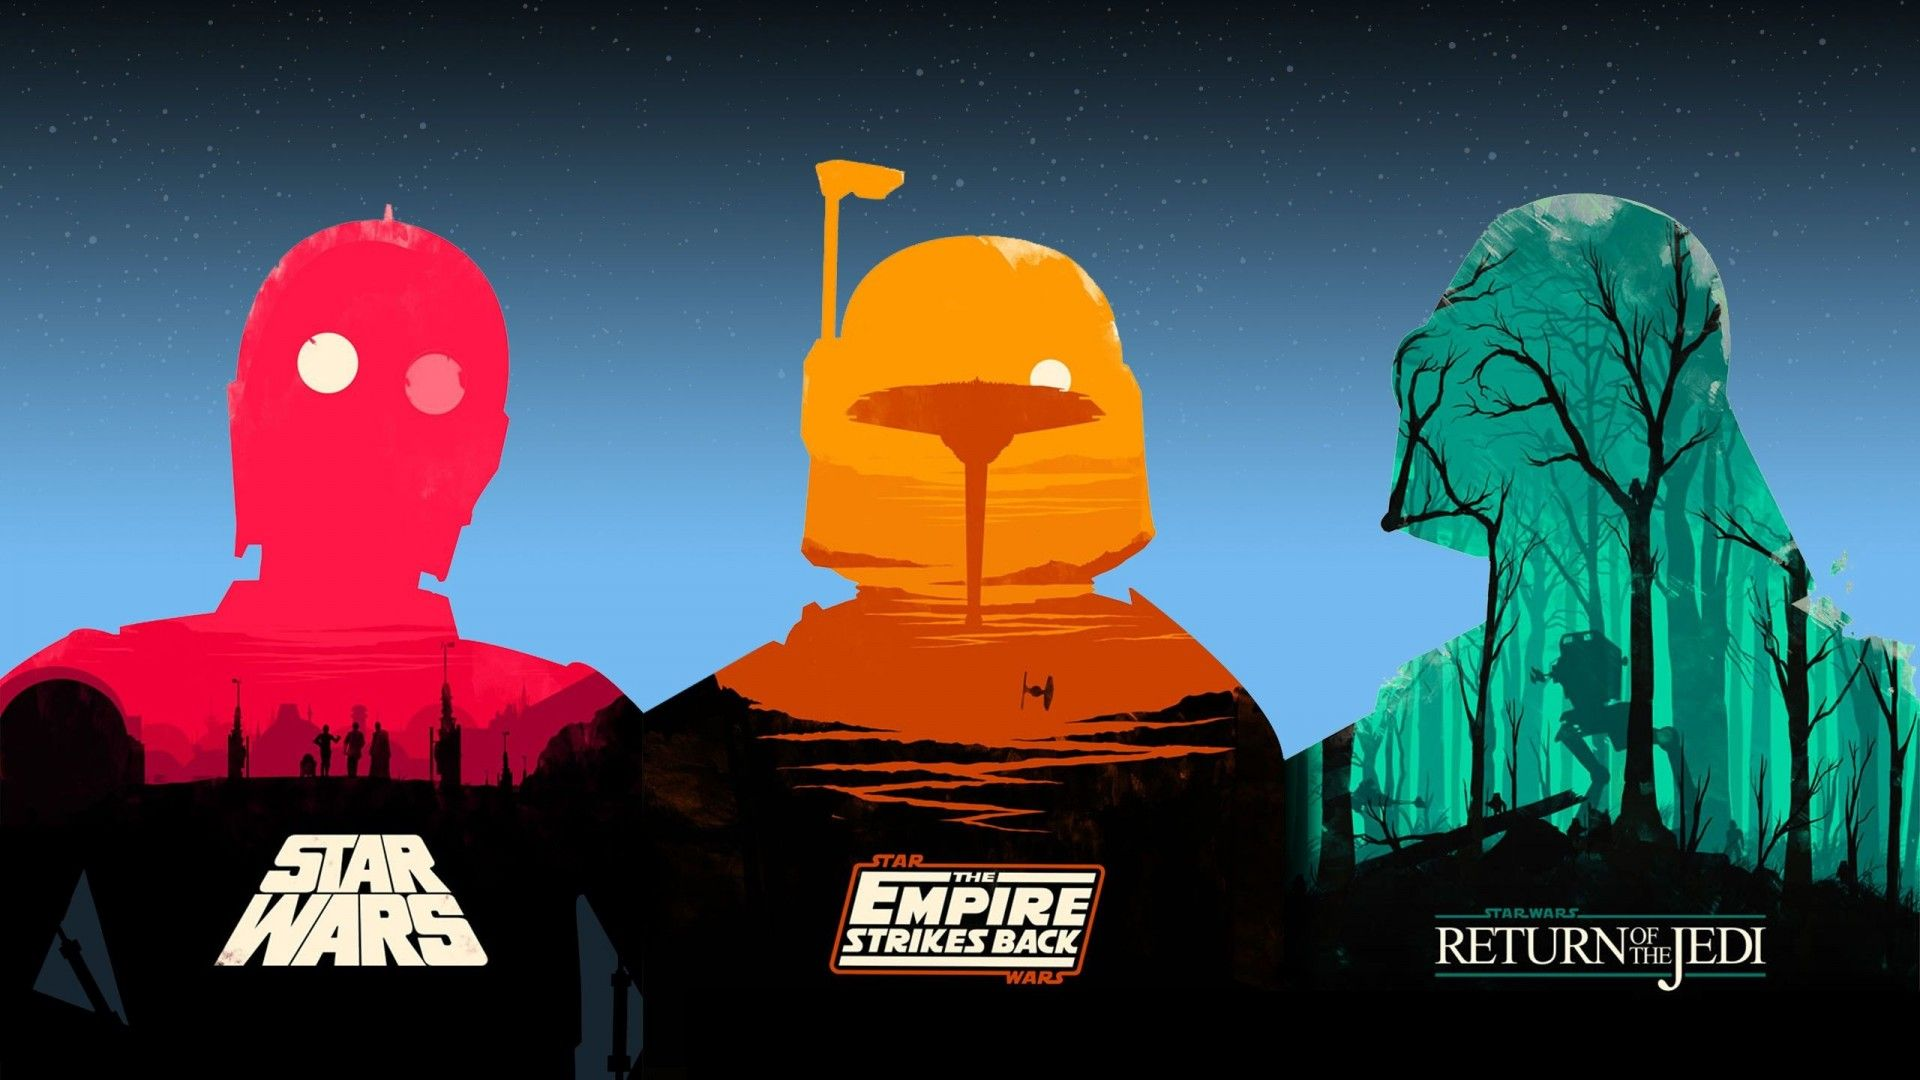 Star Wars Laptop Wallpaper Posted By Ryan Sellers